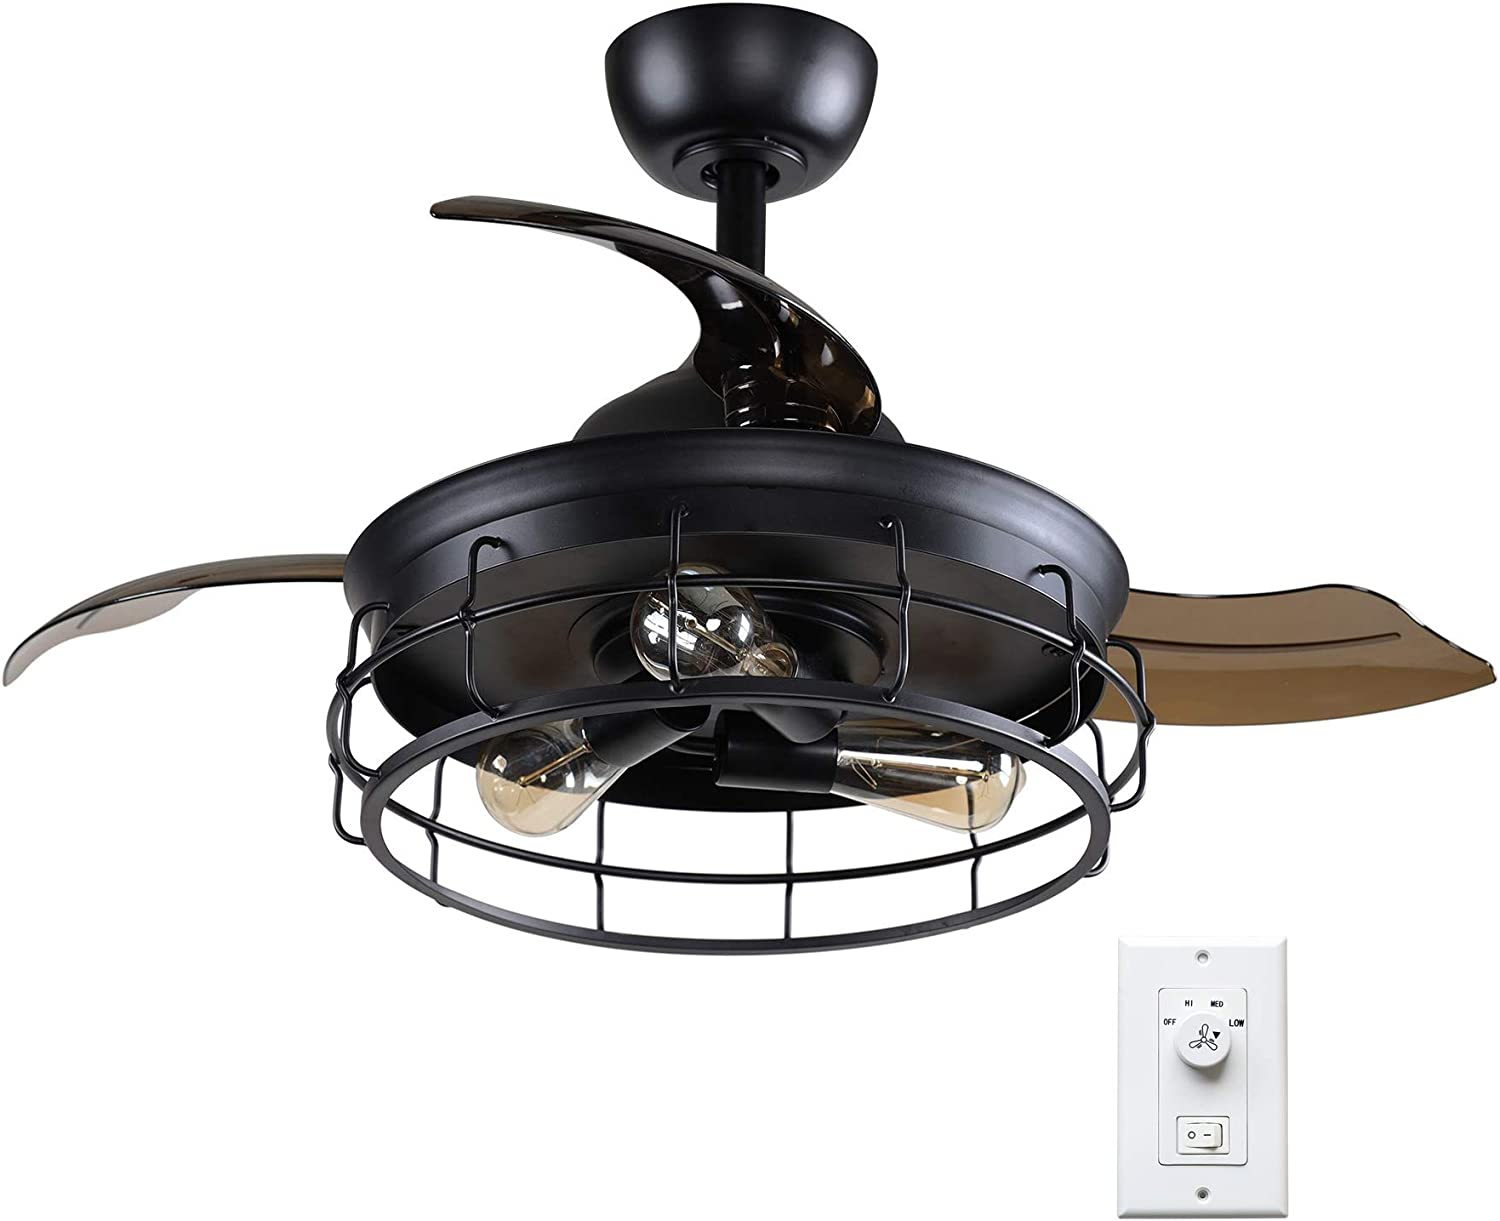 Miami Mall Parrot service Uncle 36 Inch Ceiling Fan Cei Lights with Farmhouse Style